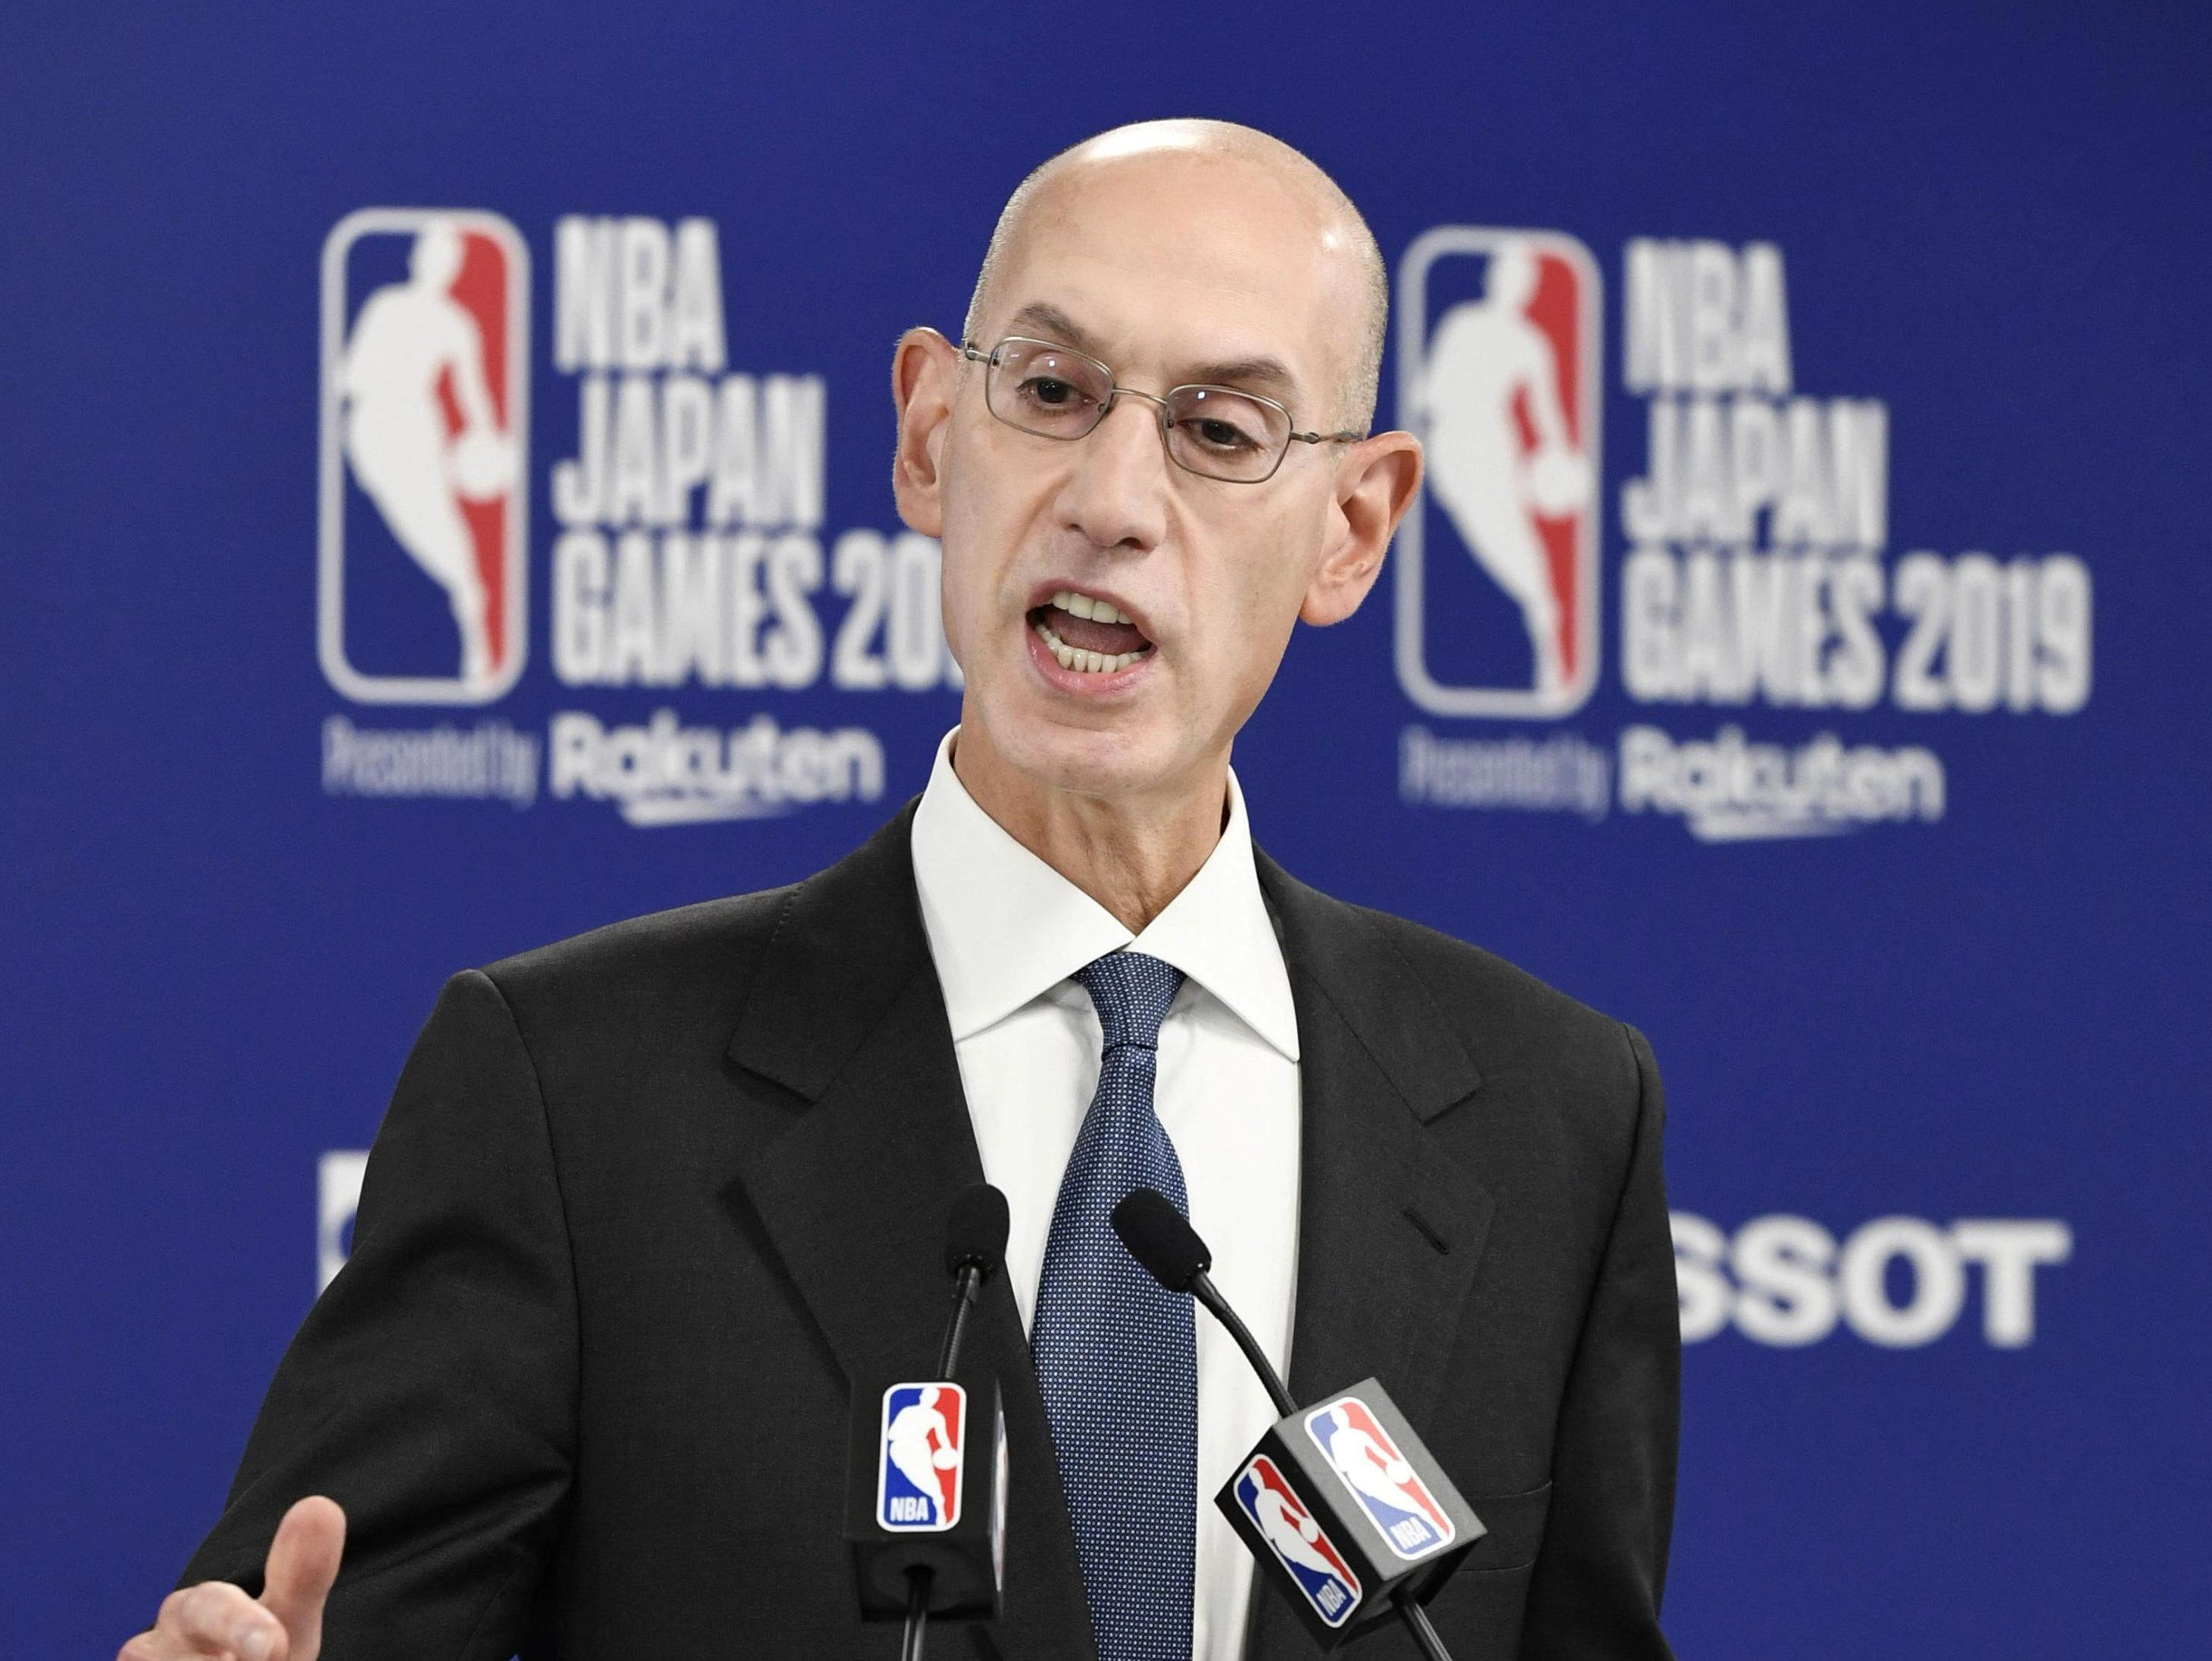 China's CCTV: NBA's Adam Silver will face 'retribution sooner or later'